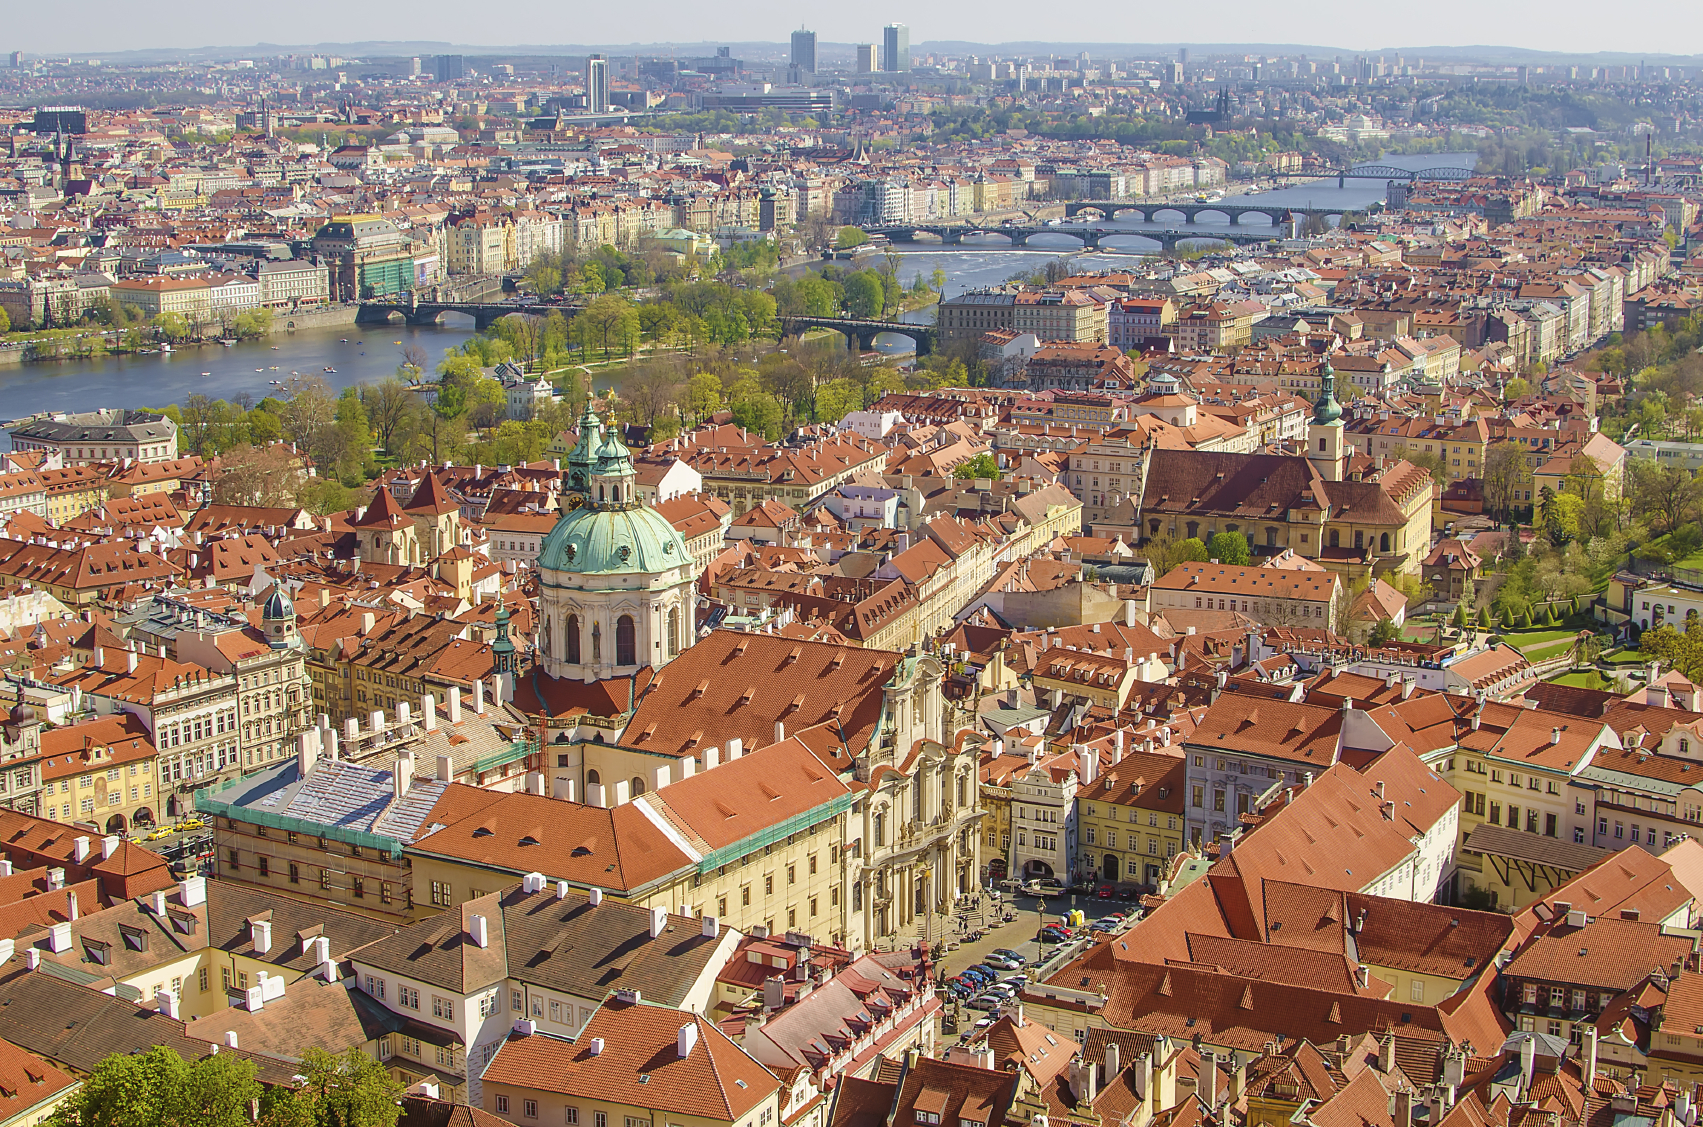 The Czech Republic is in a spring mood, which is connected with the preparation of numerous events, such as Easter markets and festivities associated with one